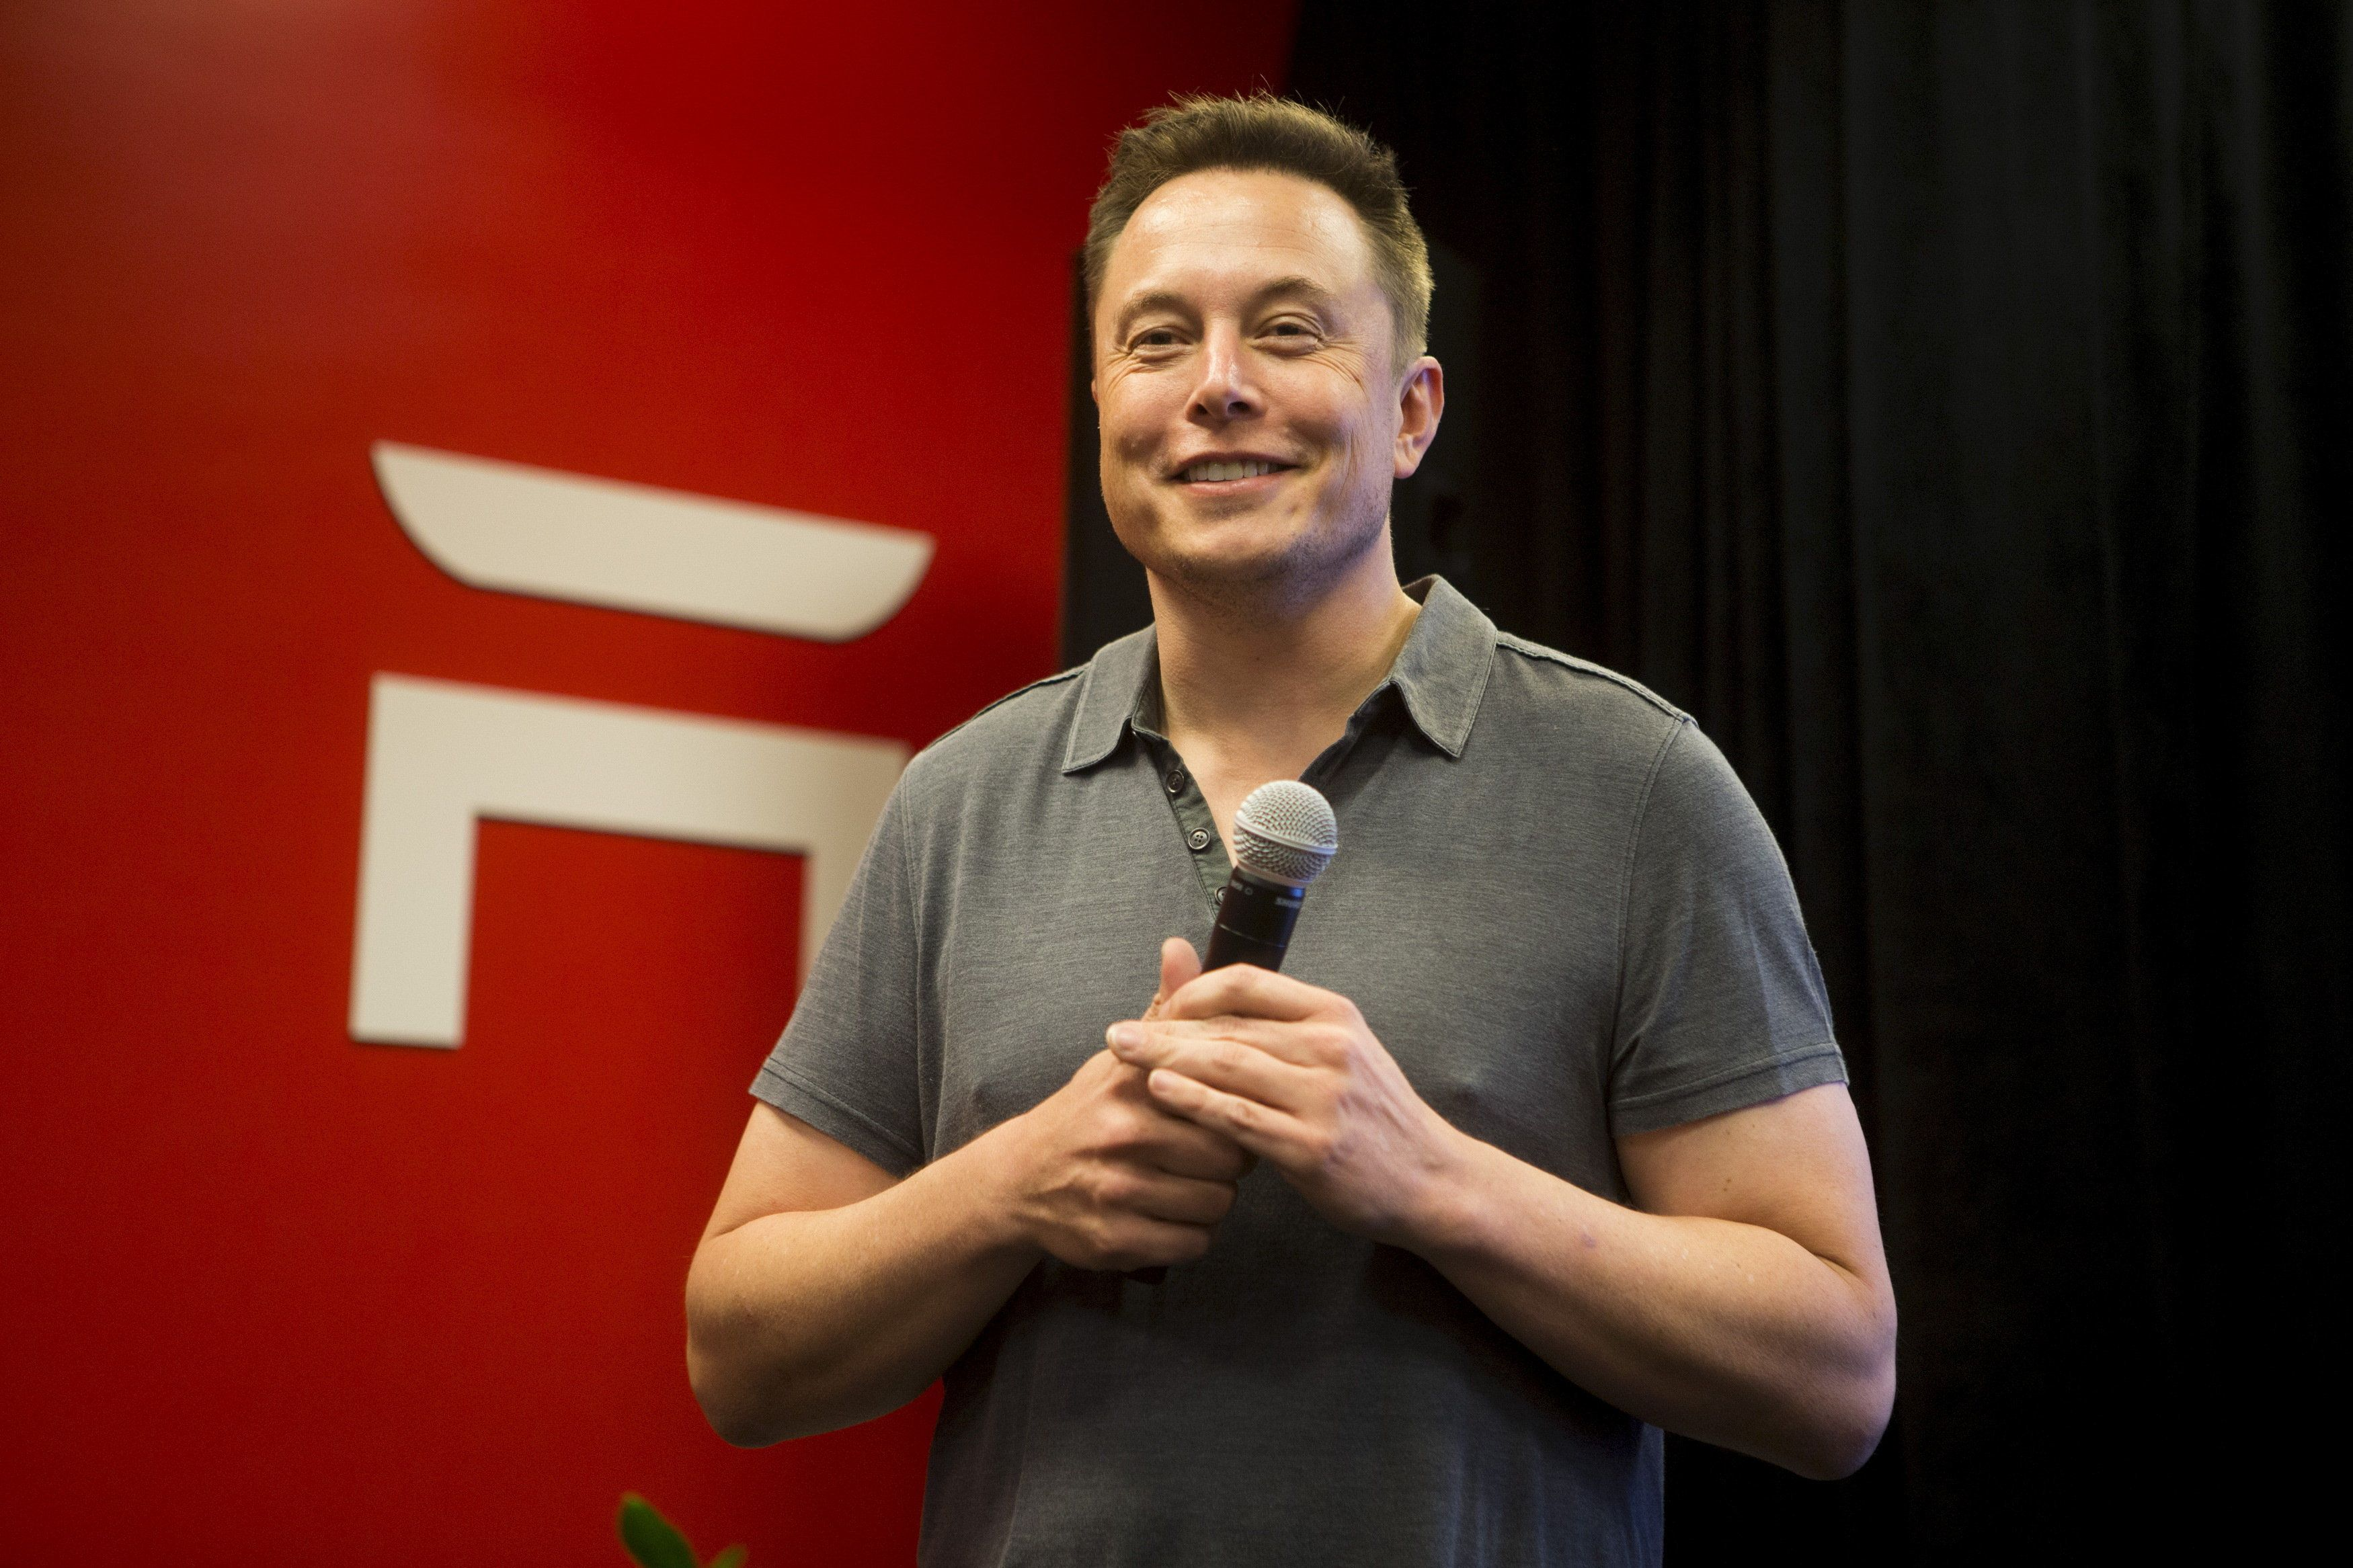 Elon Musk's 'Master Plan' Envisions Automated Tesla Trucks, Buses And Sharable